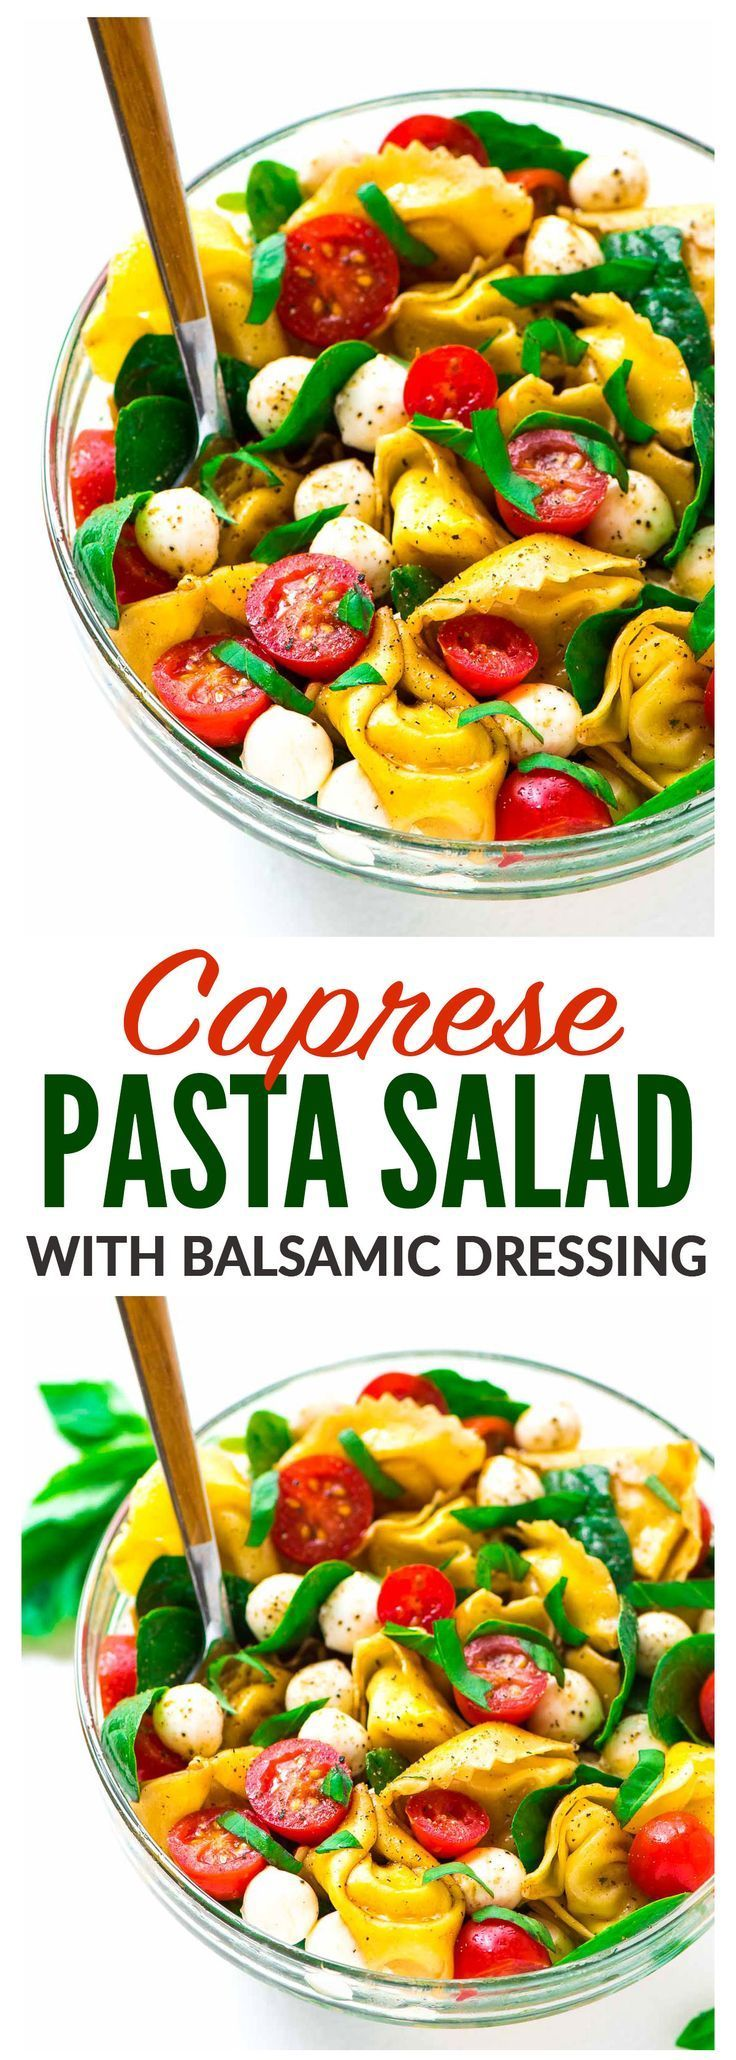 Caprese Pasta Salad with balsamic, tortellini, and fresh basil. The perfect combination of flavors. A fresh and healthy cold pasta salad that's great for summer appetizers, sides, and light dinners. Easy recipe and ready in 15 minutes! Recipe at wellplated.com | @Well Plated